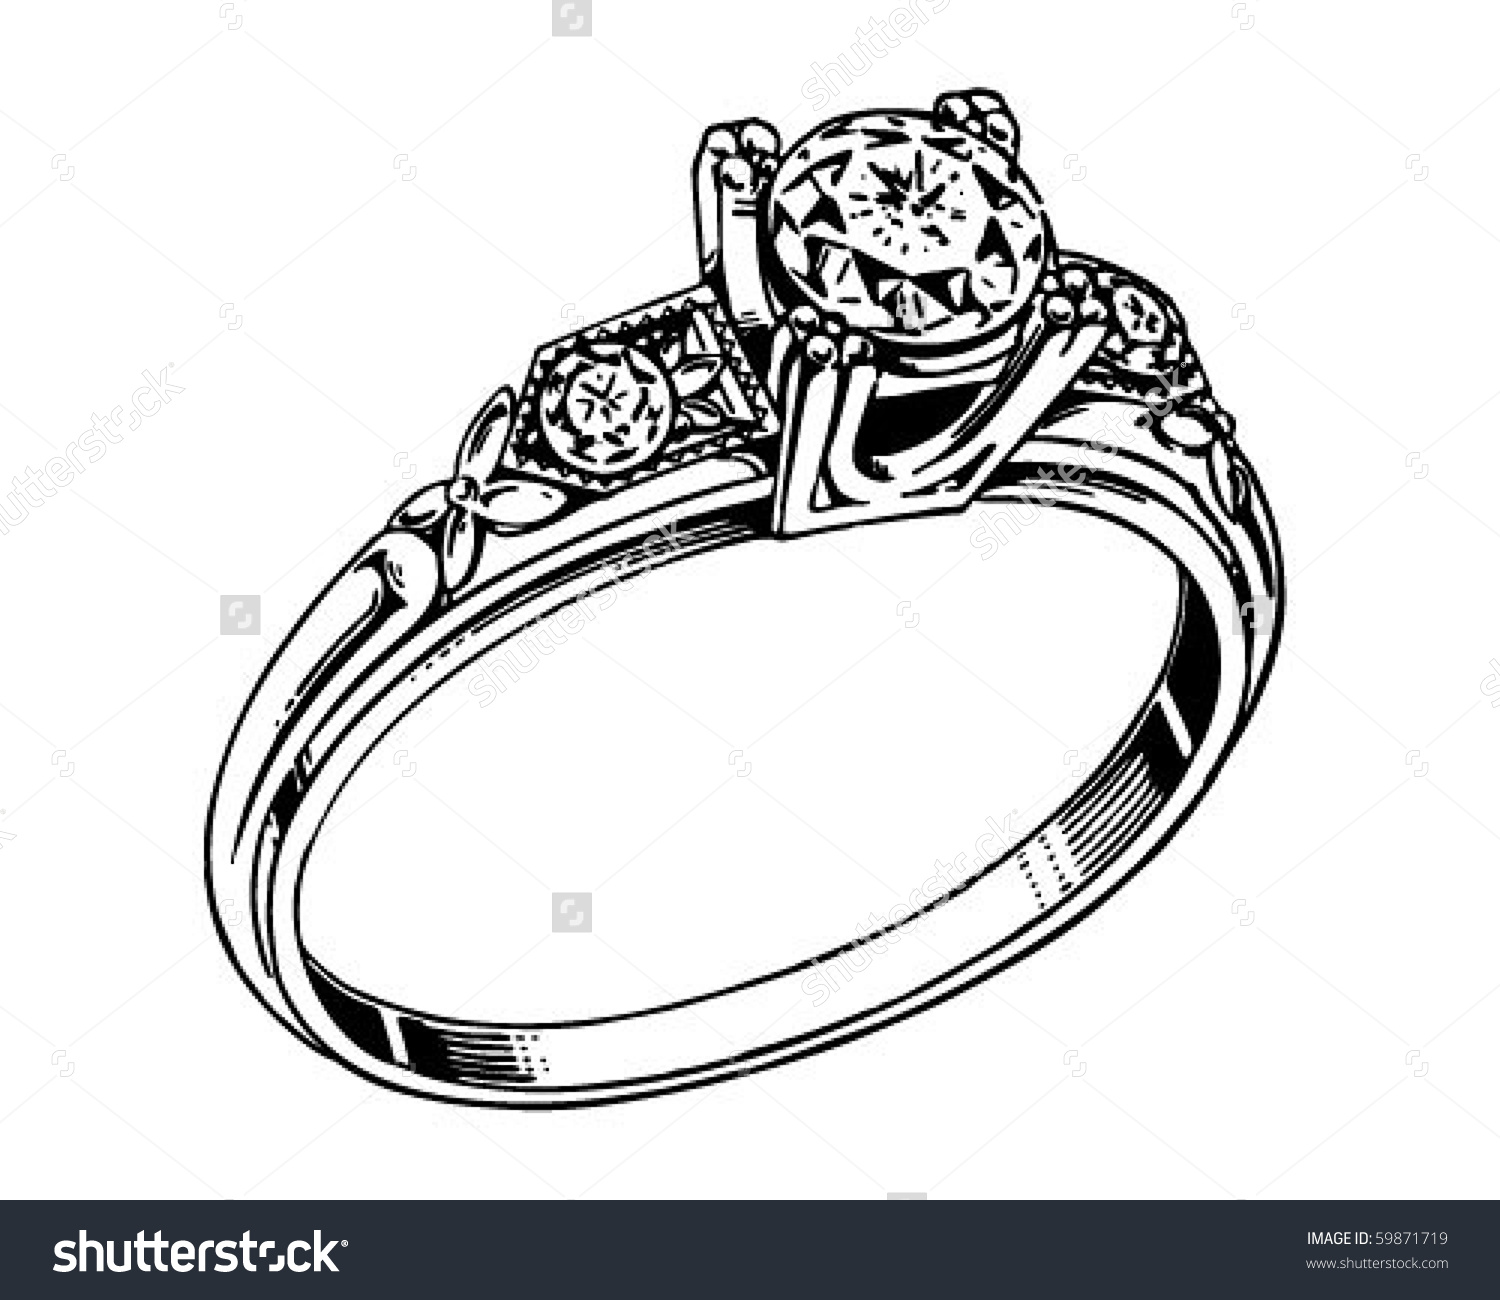 Engagement ring illustration